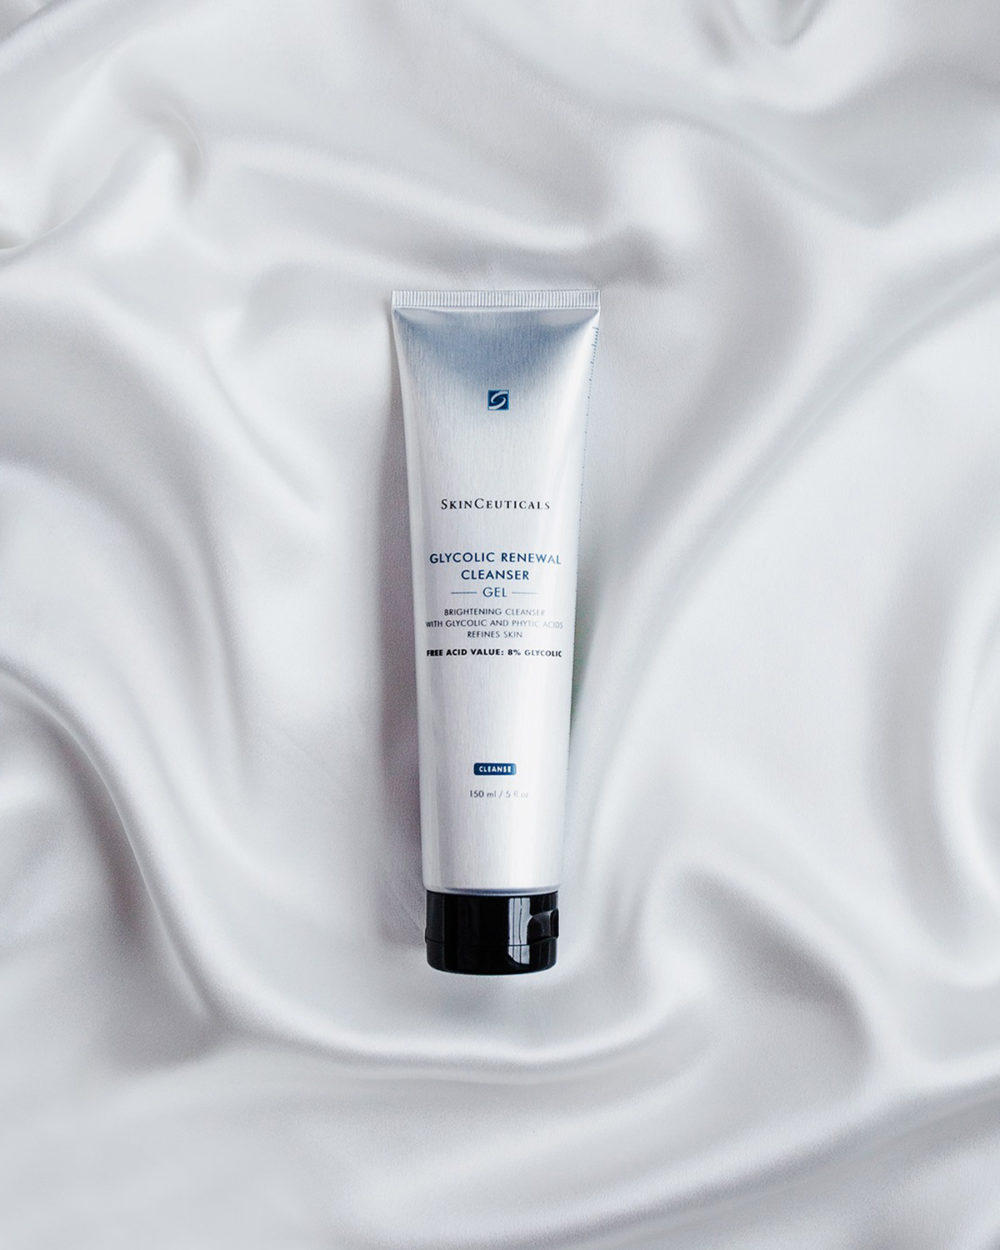 Dermanet.no - SkinCeuticals Glycolic Renewal Cleanser